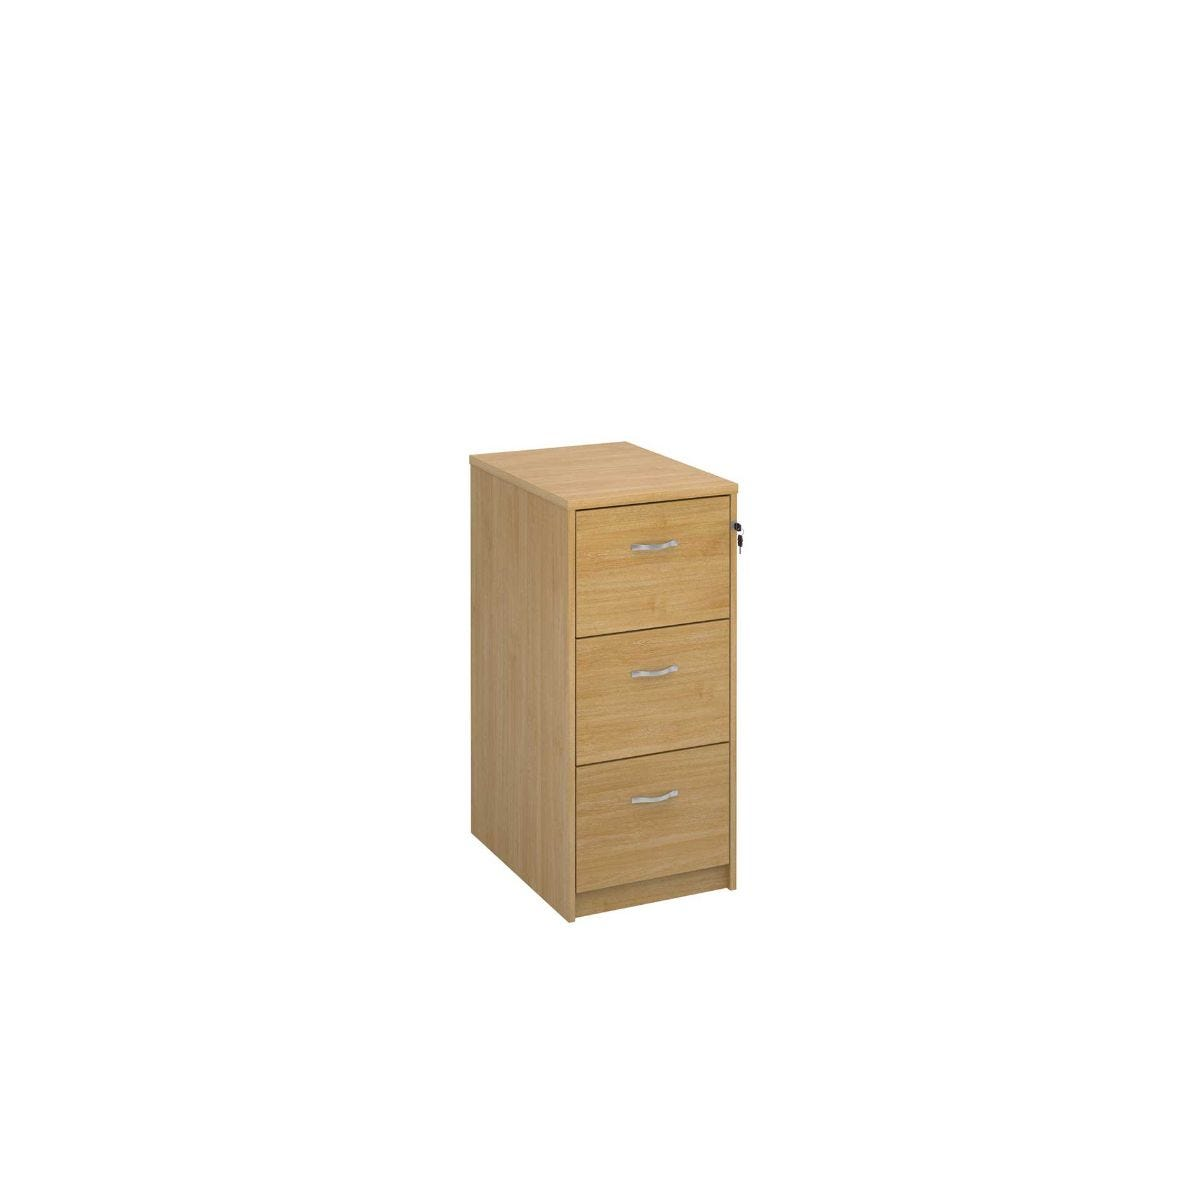 Deluxe Executive Three Drawer Filing Cabinet, Oak